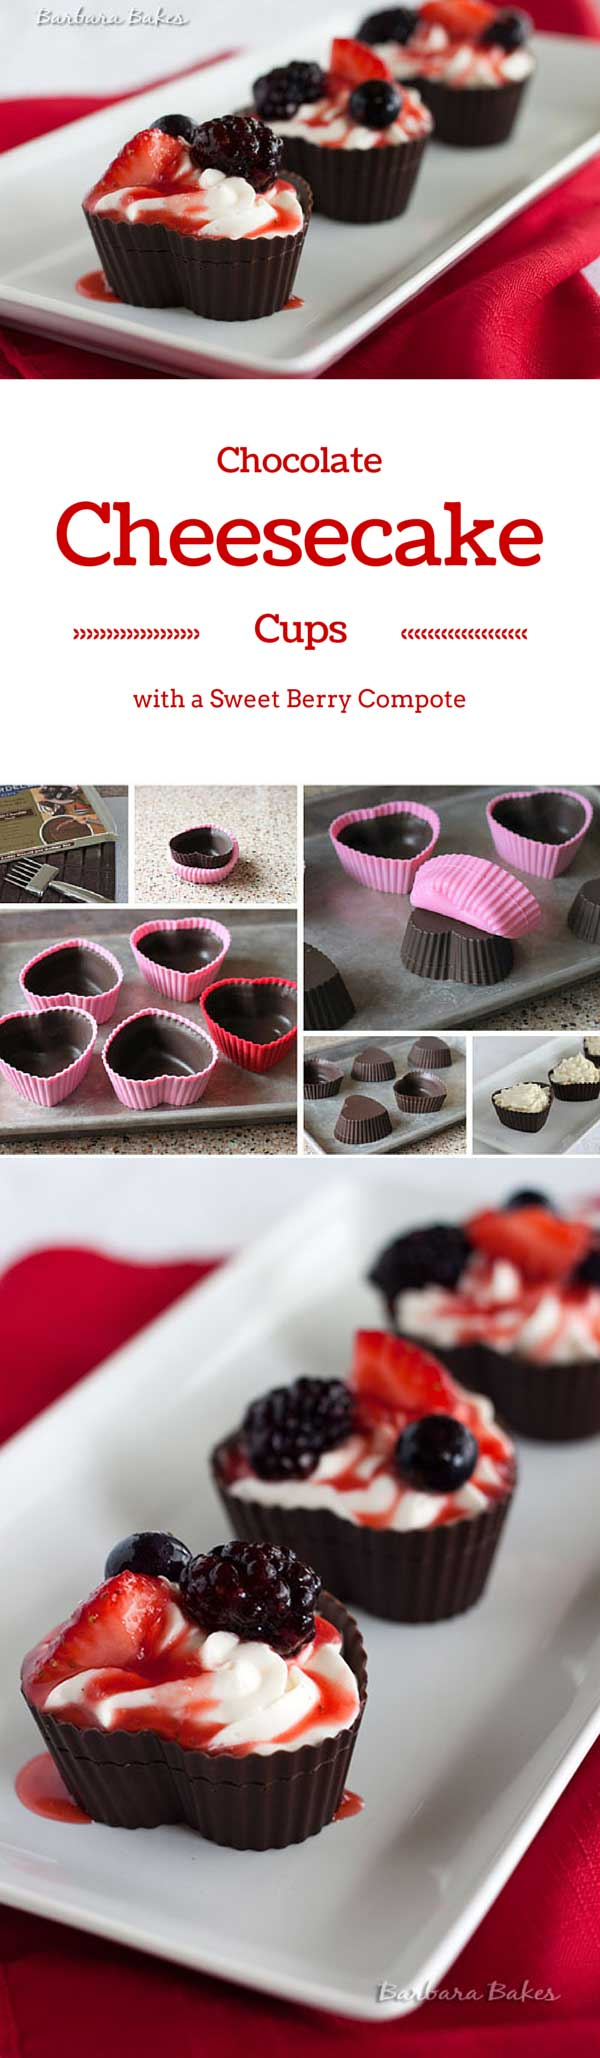 Chocolate Cheesecake Mousse Cups with Berry Compote | Barbara Bakes